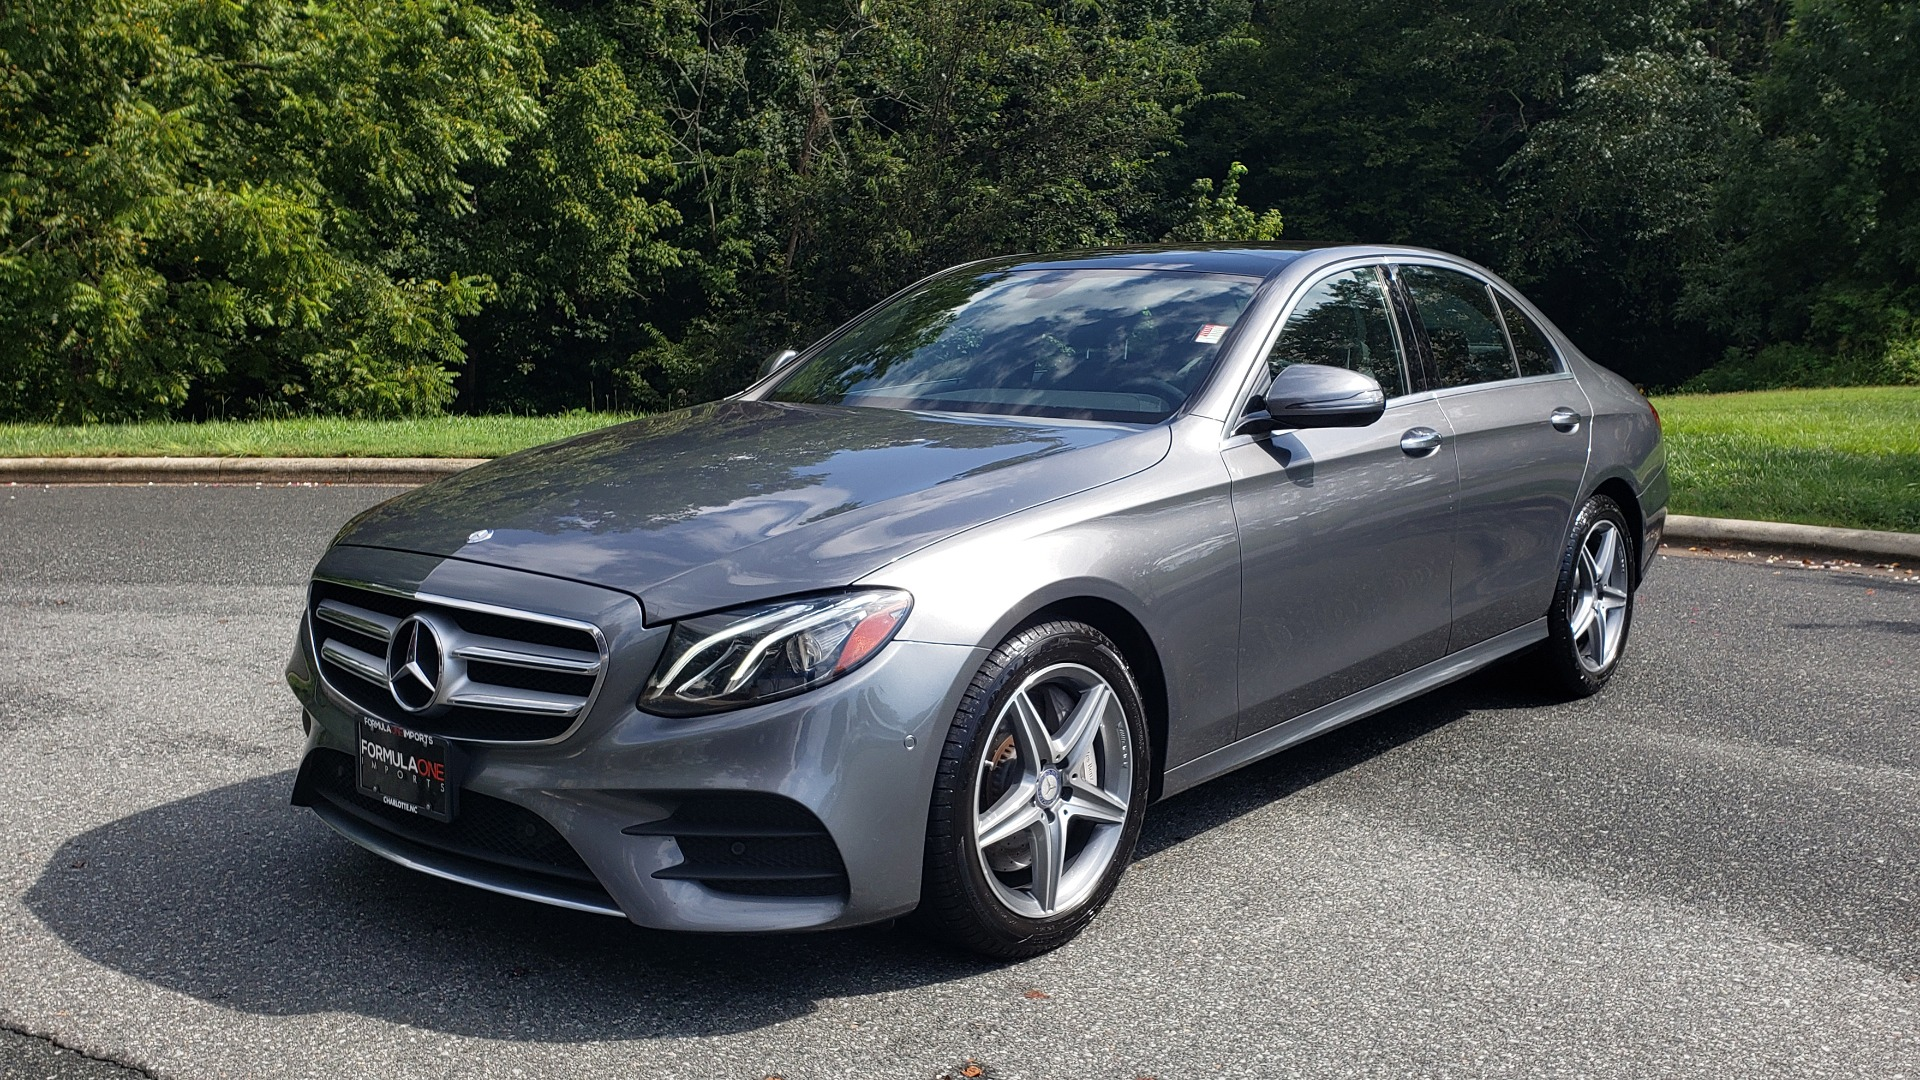 Used 2017 Mercedes-Benz E-CLASS E 300 SPORT / NAV / SUNROOF / HTD STS / BURMESTER / REARVIEW for sale Sold at Formula Imports in Charlotte NC 28227 1